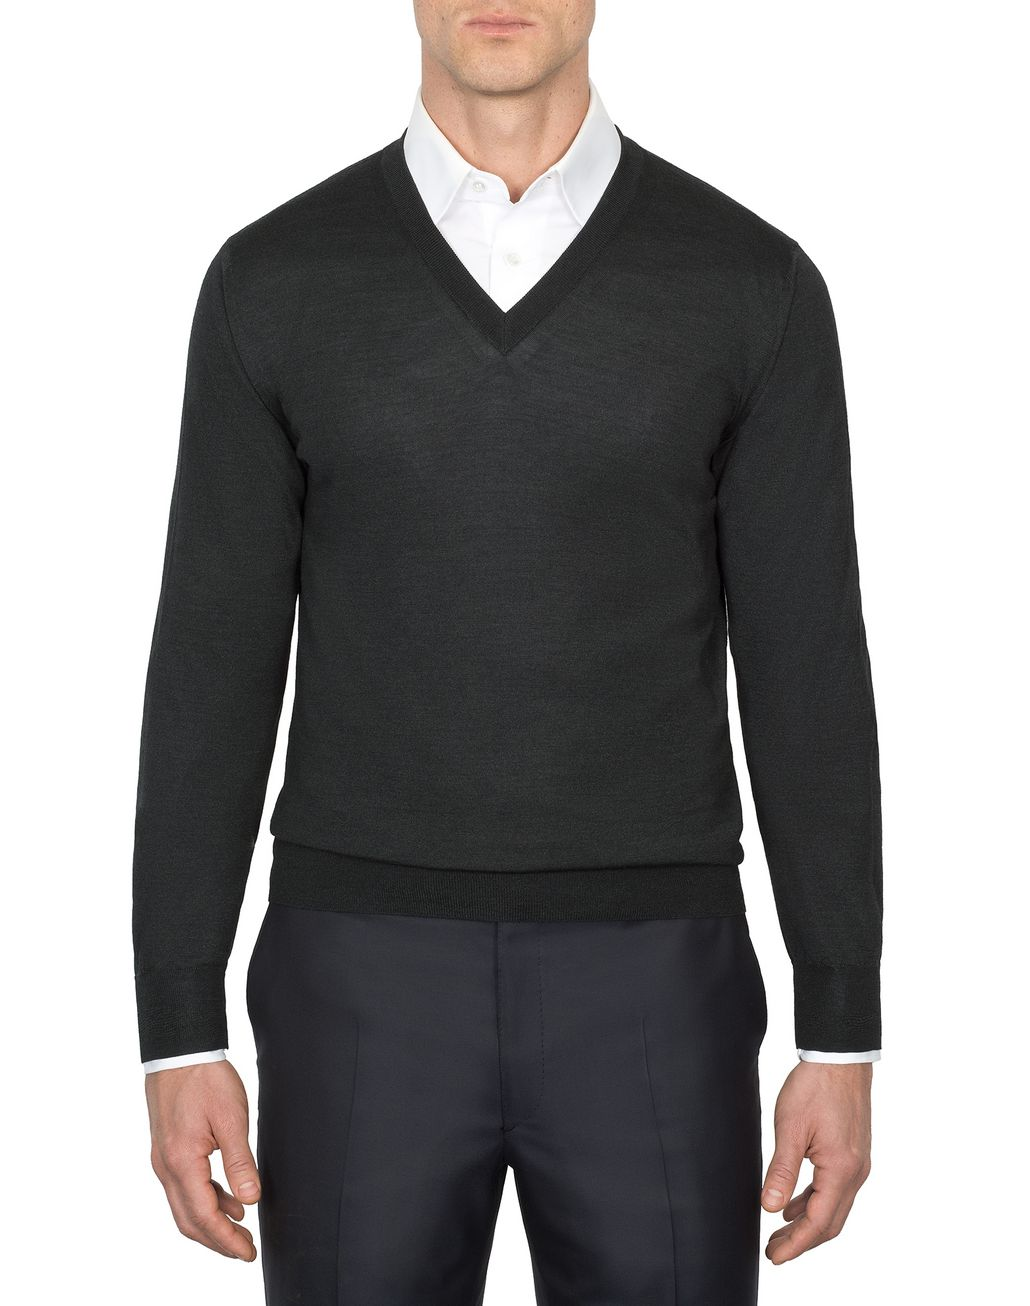 BRIONI 'Essential' Grey V-Neck Sweater Knitwear [*** pickupInStoreShippingNotGuaranteed_info ***] r